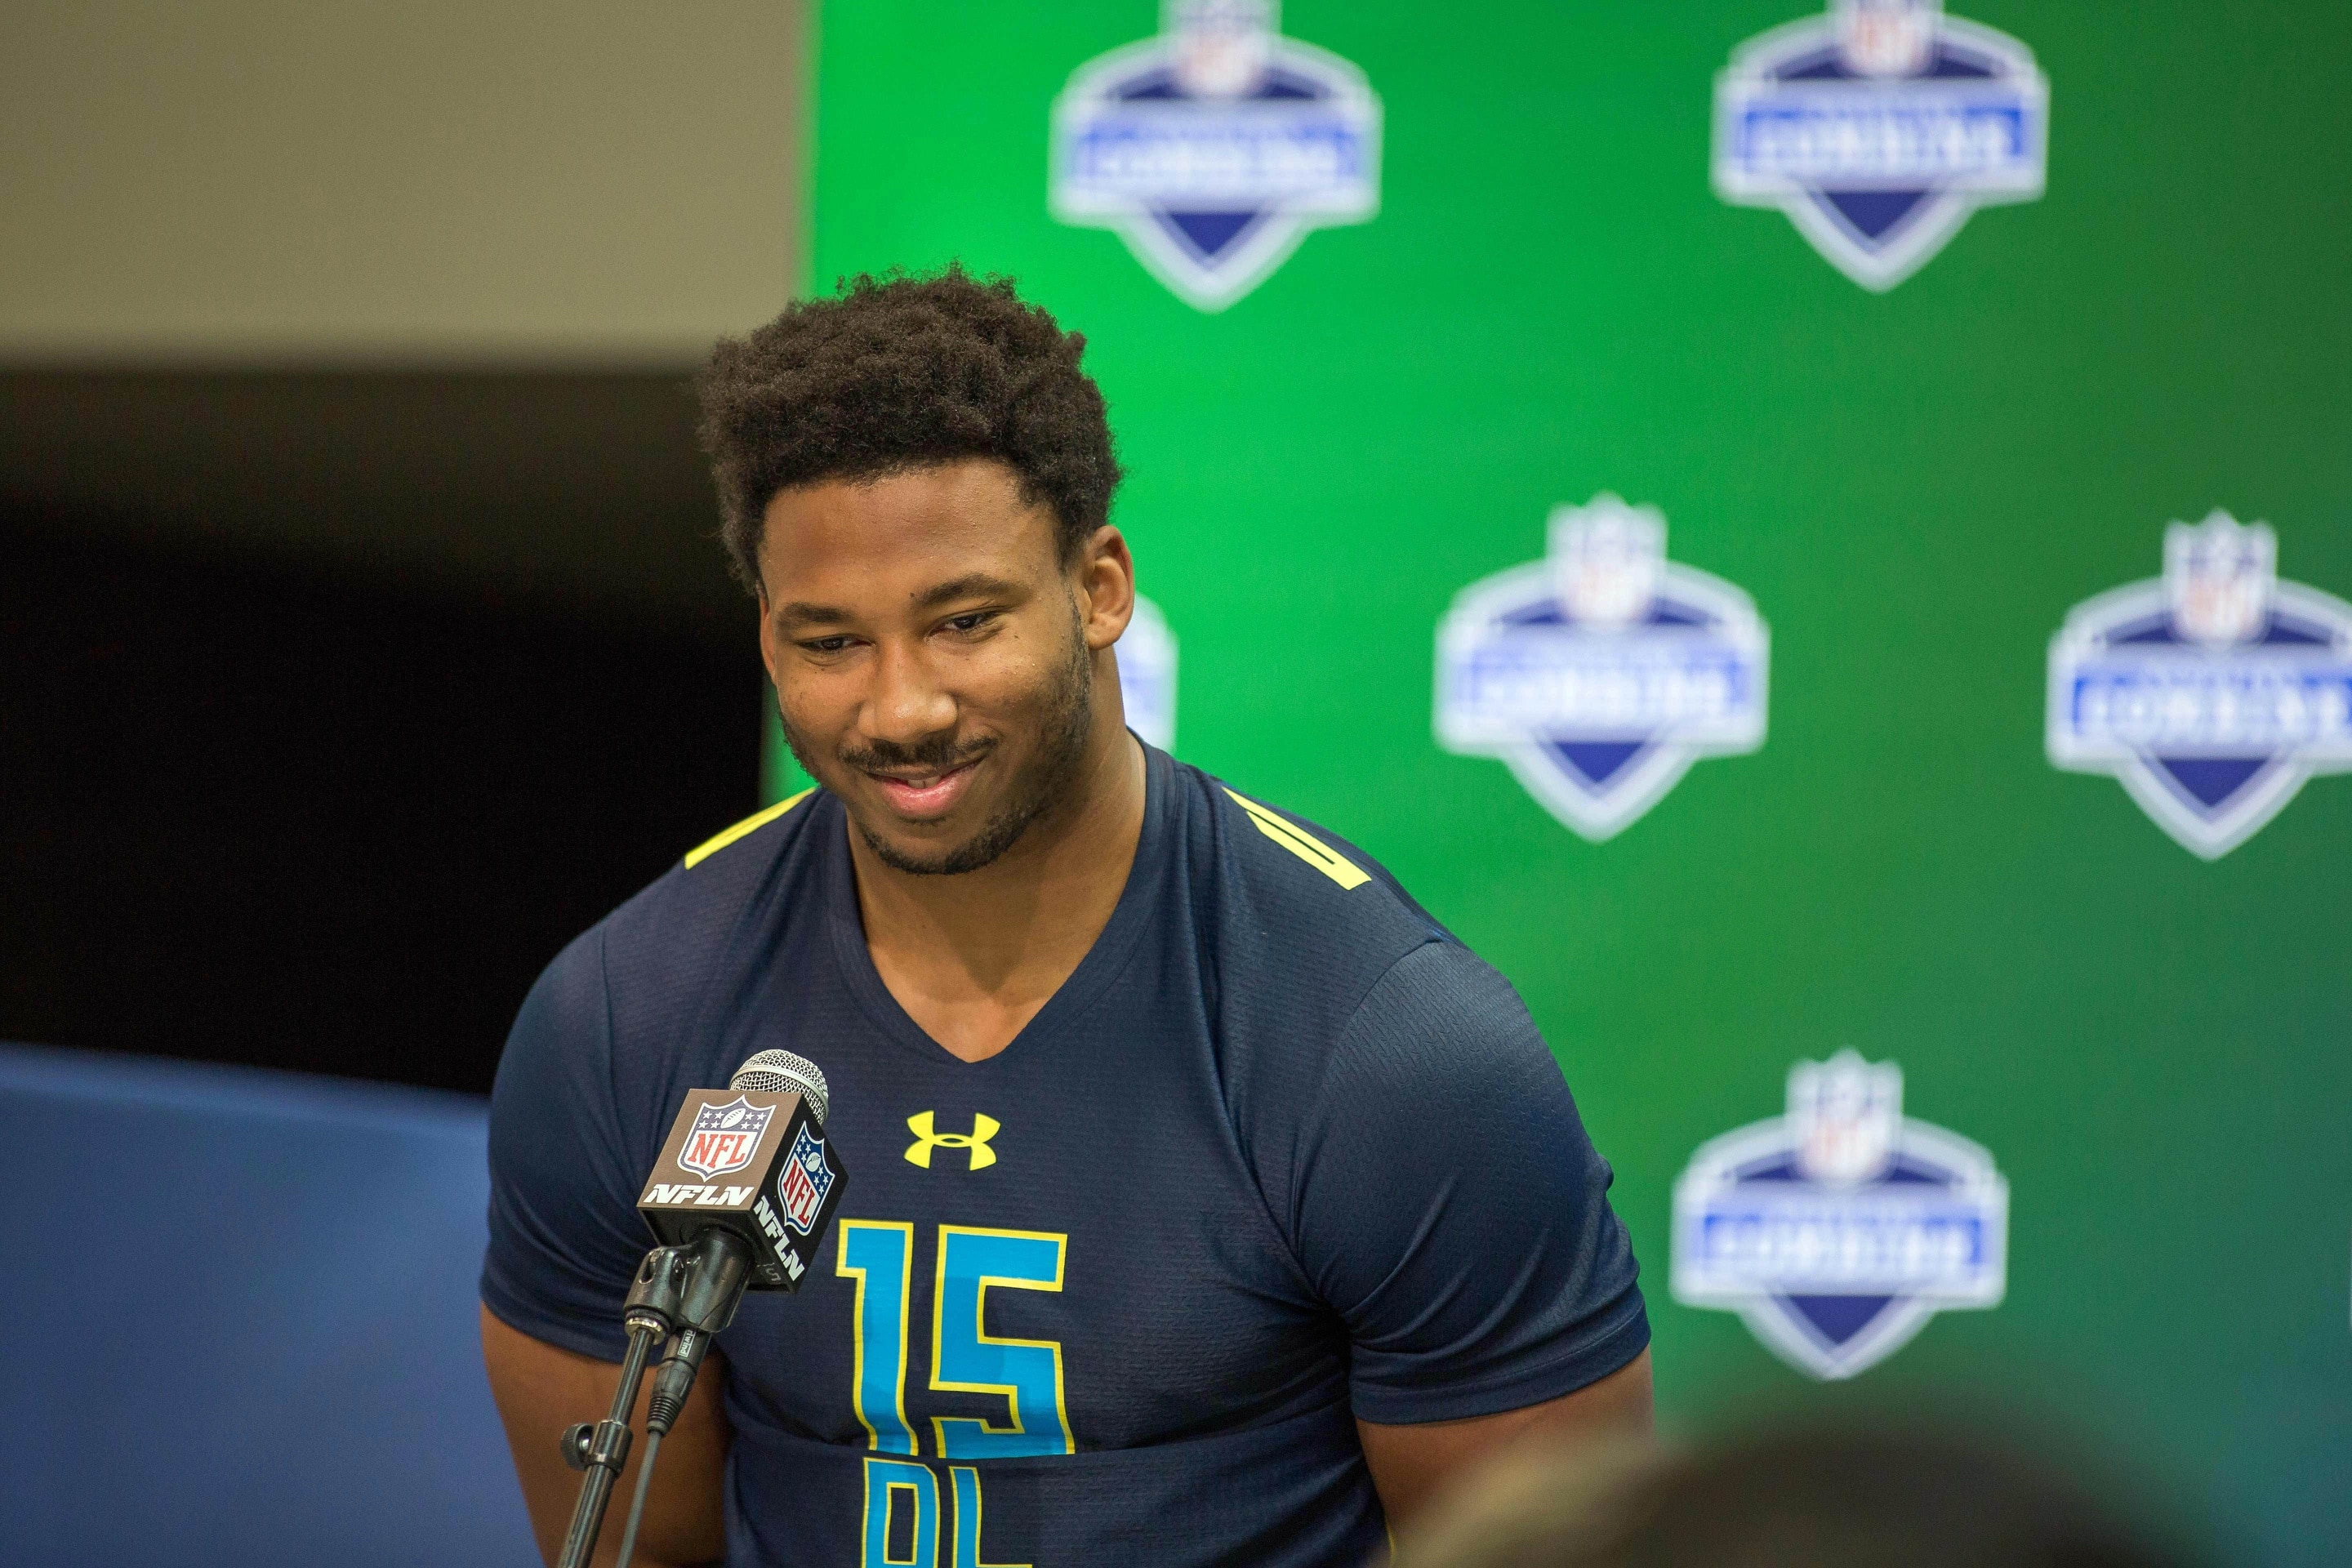 Mar 4, 2017; Indianapolis, IN, USA; Texas A&M defensive end Myles Garrett speaks to the media during the 2017 combine at Indiana Convention Center. Mandatory Credit: Trevor Ruszkowski-USA TODAY Sports